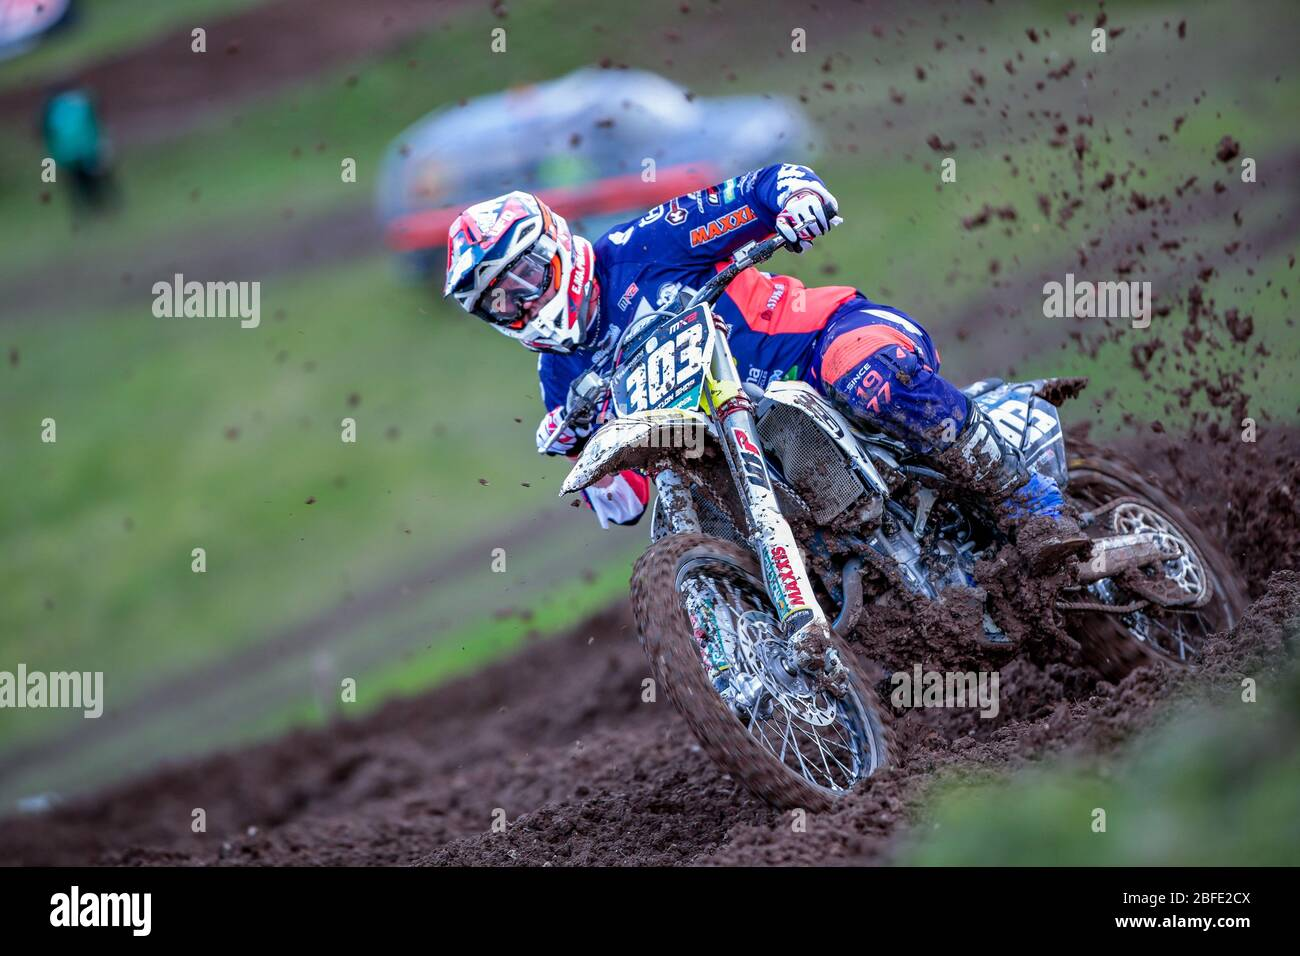 Winchester, Italy. 01st Mar, 2020. alberto forato team husqvarna junior maddii team during MXGP of Great Britain, Motocross in winchester, Italy, March 01 2020 Credit: Independent Photo Agency/Alamy Live News Stock Photo